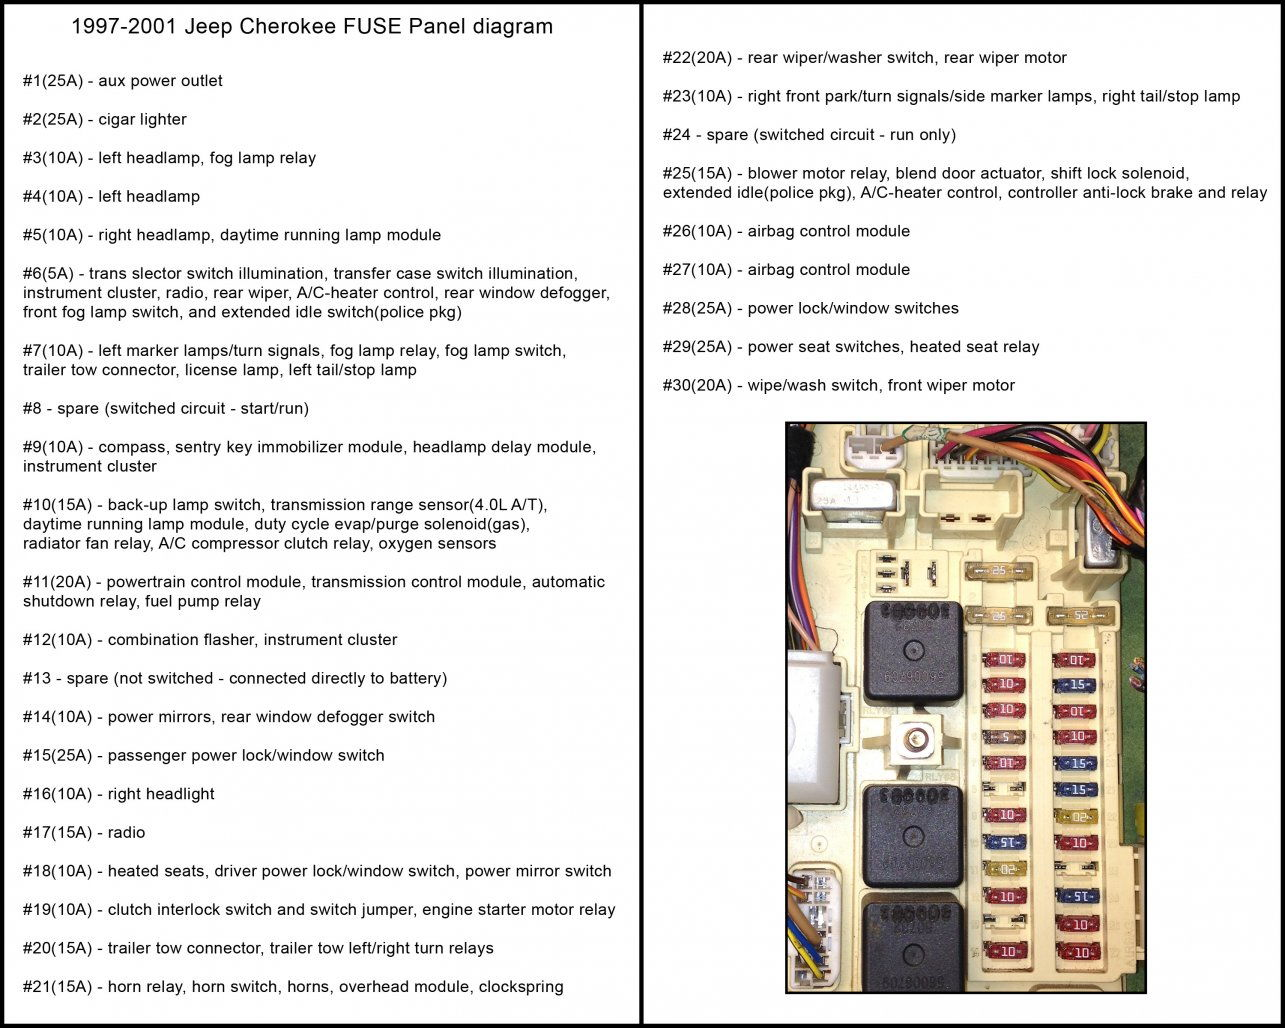 2000 Dodge Grand Caravan Ignition Wiring Diagram 2012 97 2 Door Fuse Confusion Jeep Cherokee Forum 1998